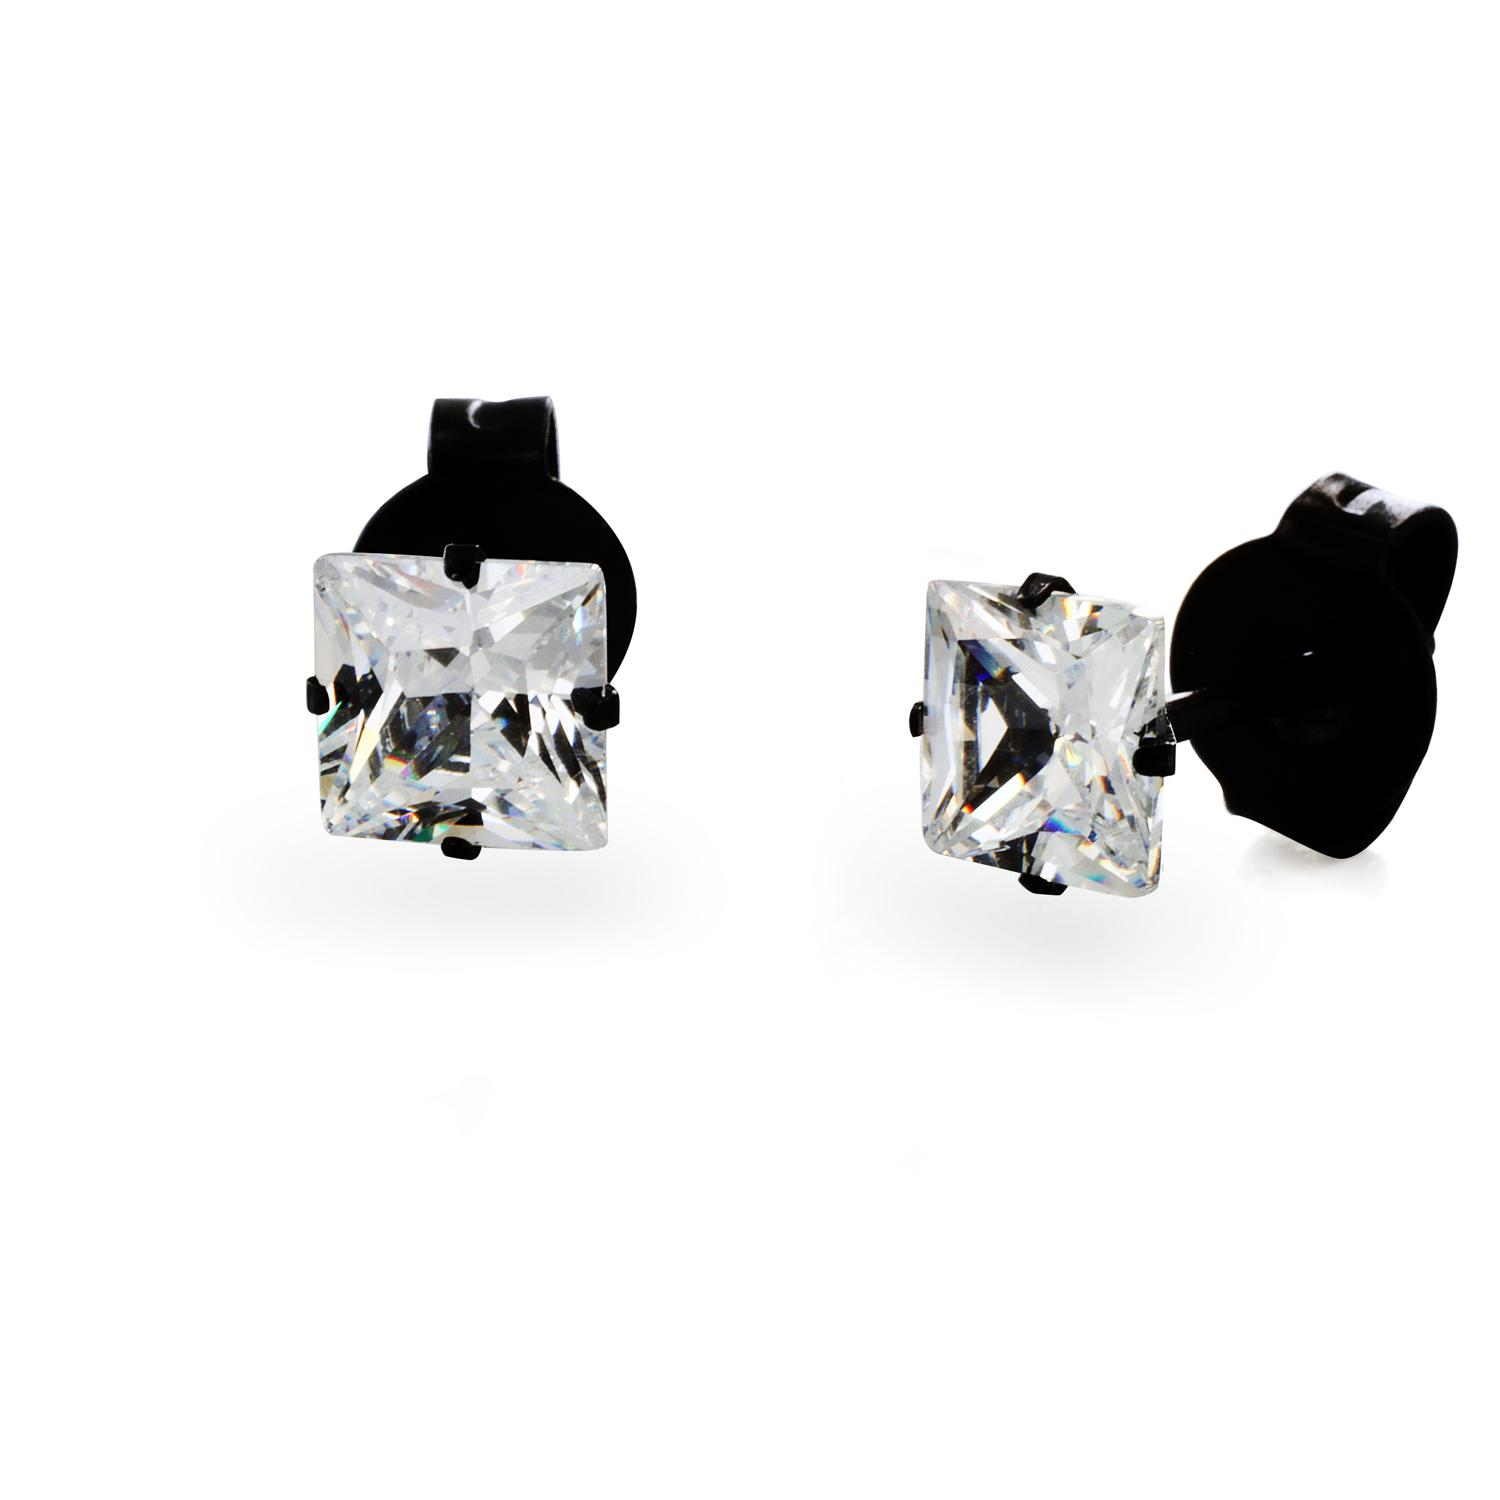 Black Plated Stainless Steel Stud Earrings with Princess Cut Clear CZ - 3 mm